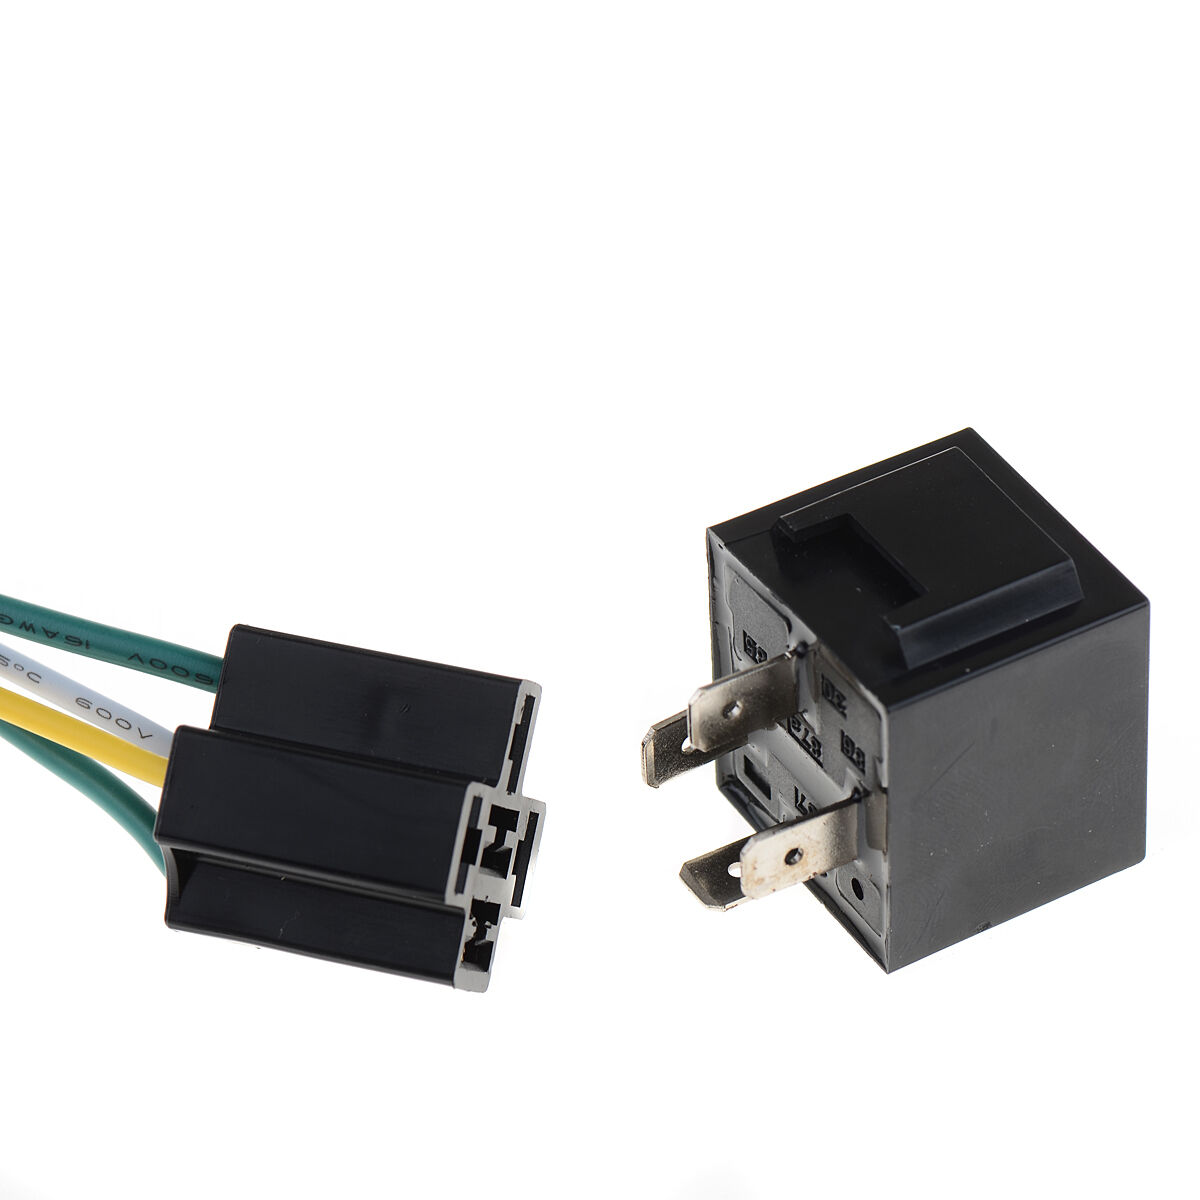 12v 40a Auto Automotive Relay Socket 40 Amp 4 Pin Wires Tool Prong Pigtail Kit